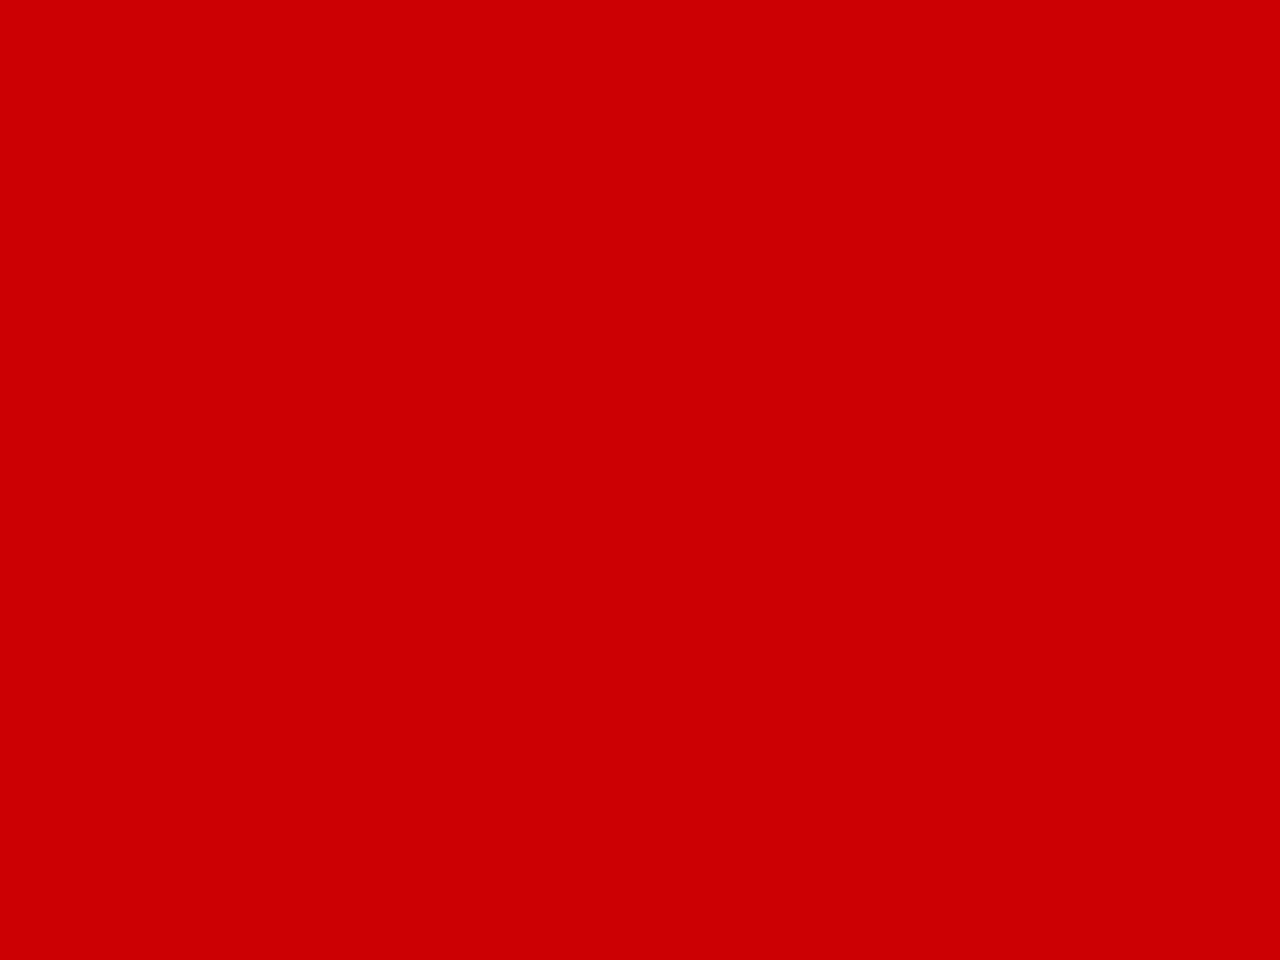 1280x960 Boston University Red Solid Color Background